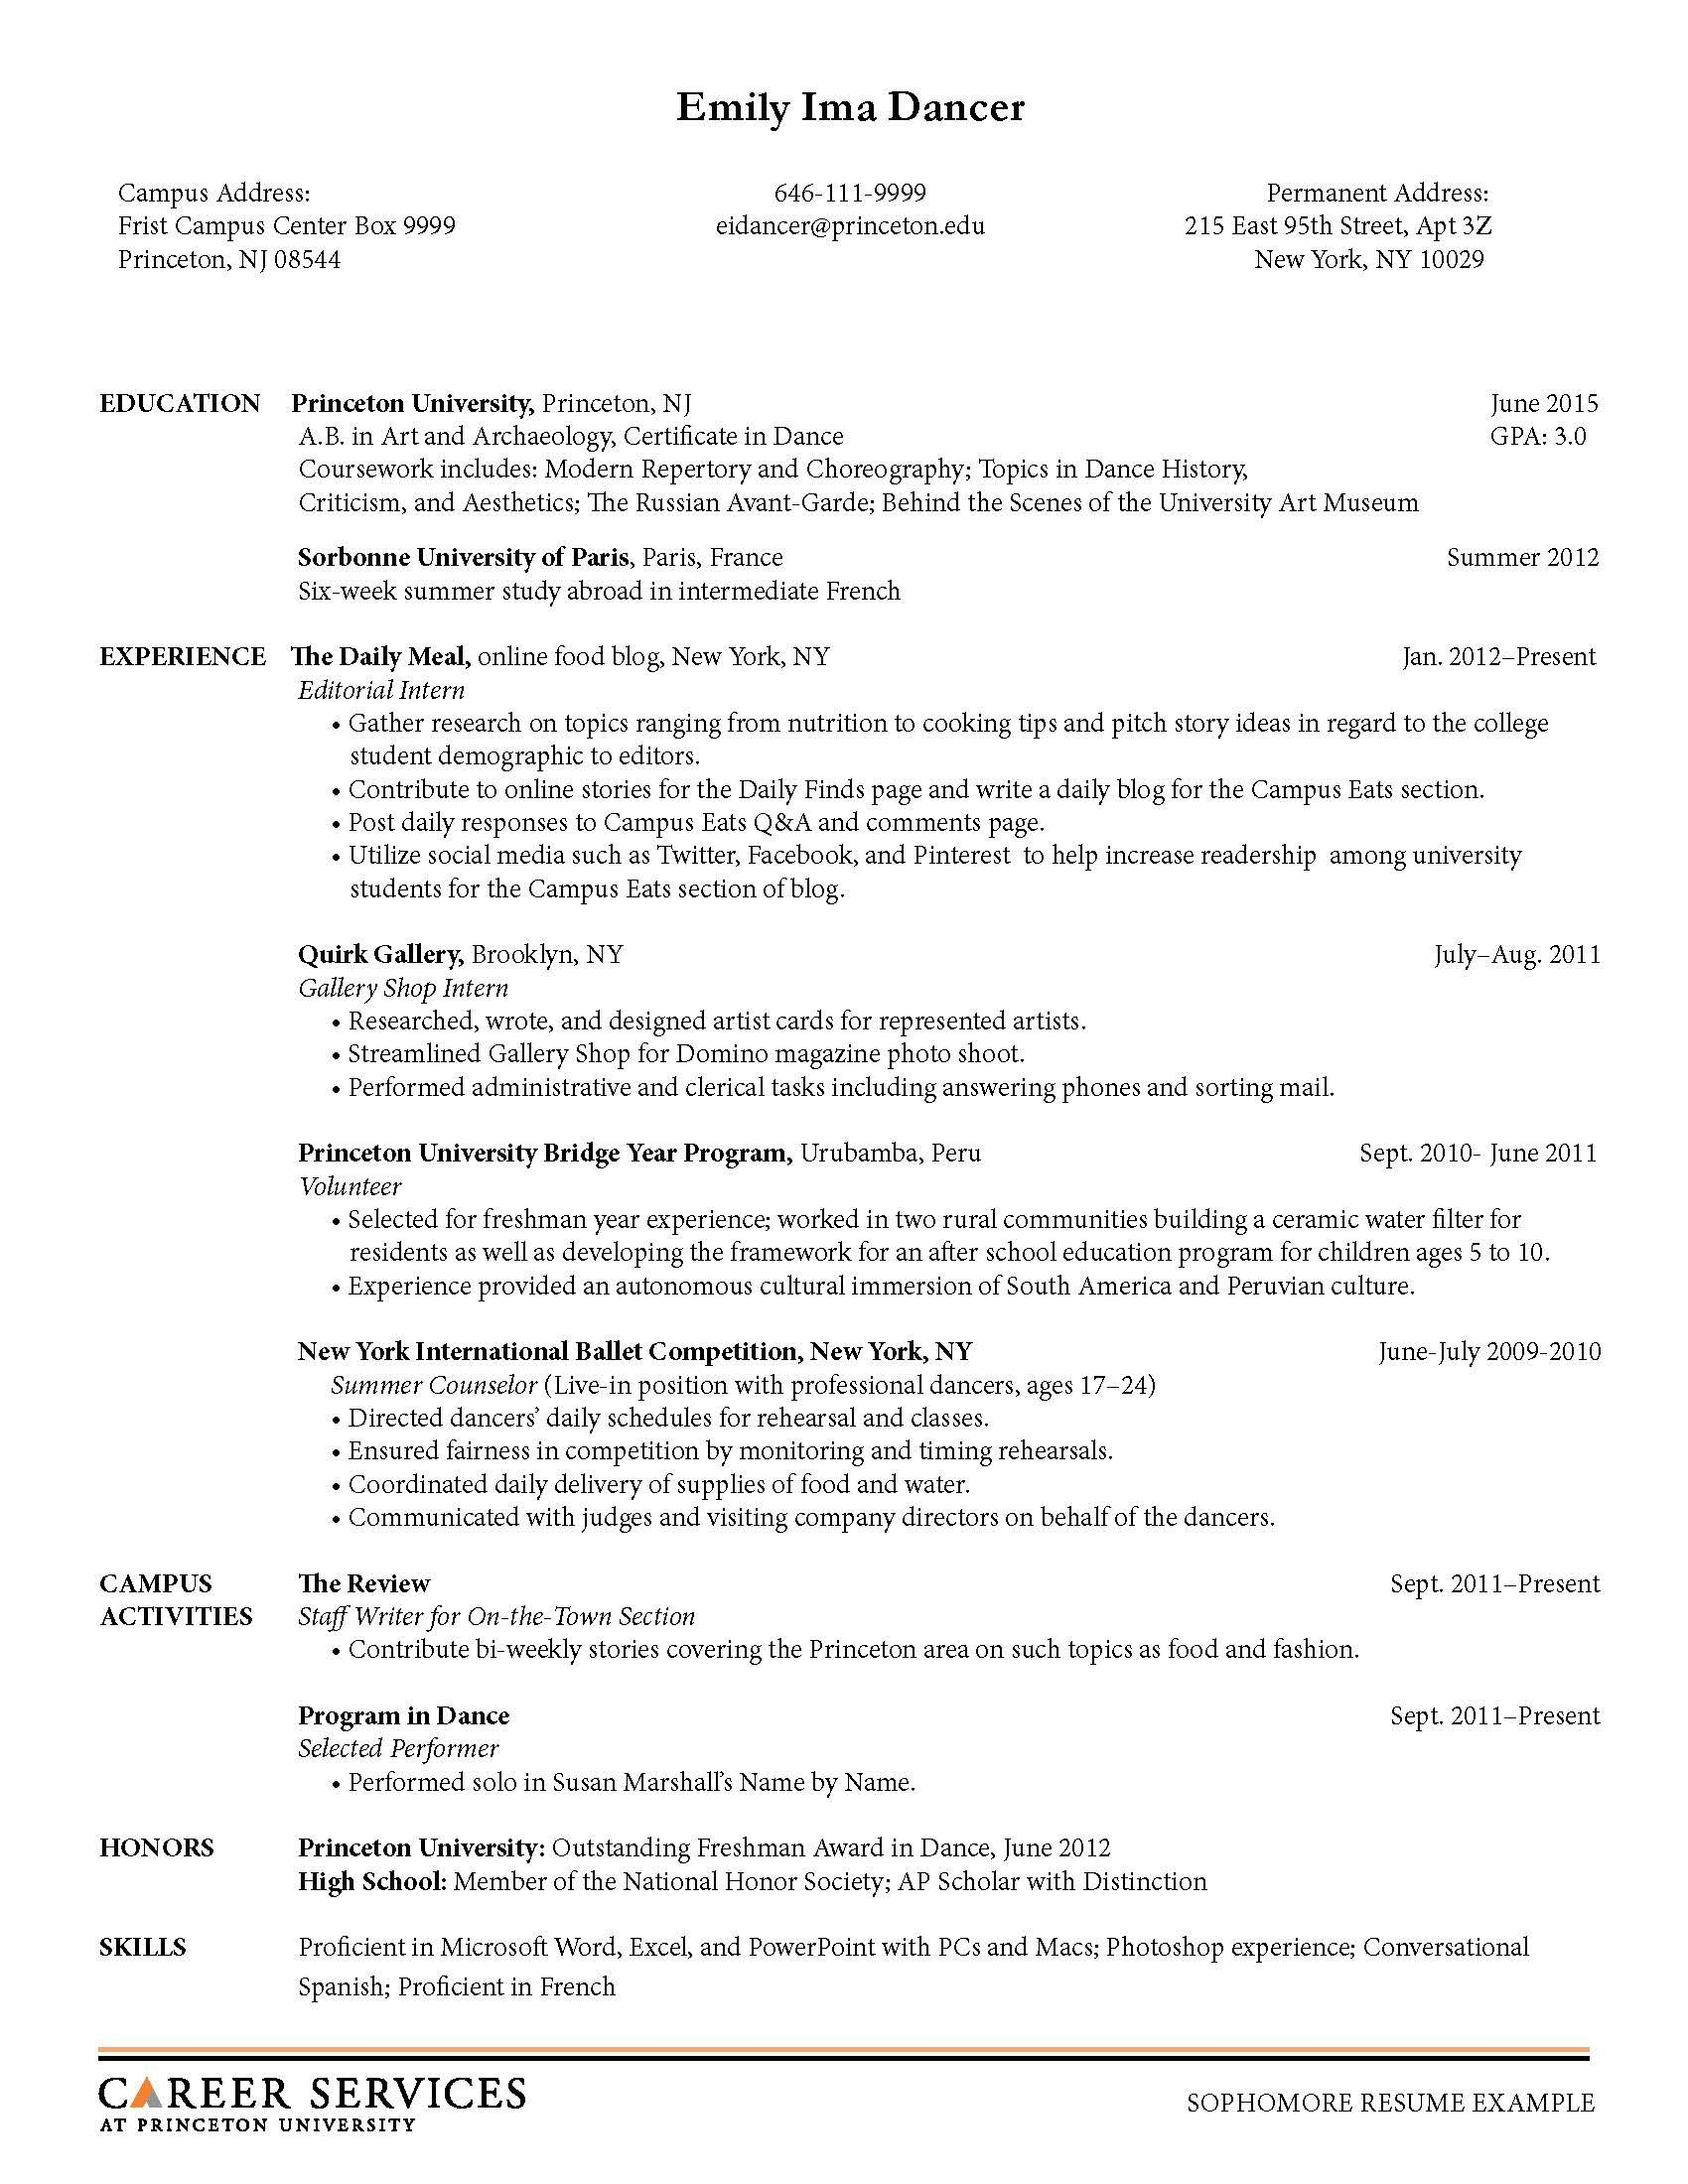 Picnictoimpeachus  Mesmerizing Sample Resume Resume And Career On Pinterest With Fetching Pastry Chef Resume Besides Sales Objective For Resume Furthermore Selenium Resume With Nice Resume Tem Also Resume For Customer Service Rep In Addition What Makes A Great Resume And Football Coach Resume As Well As Nursing Skills Resume Additionally Resume Writer Service From Pinterestcom With Picnictoimpeachus  Fetching Sample Resume Resume And Career On Pinterest With Nice Pastry Chef Resume Besides Sales Objective For Resume Furthermore Selenium Resume And Mesmerizing Resume Tem Also Resume For Customer Service Rep In Addition What Makes A Great Resume From Pinterestcom